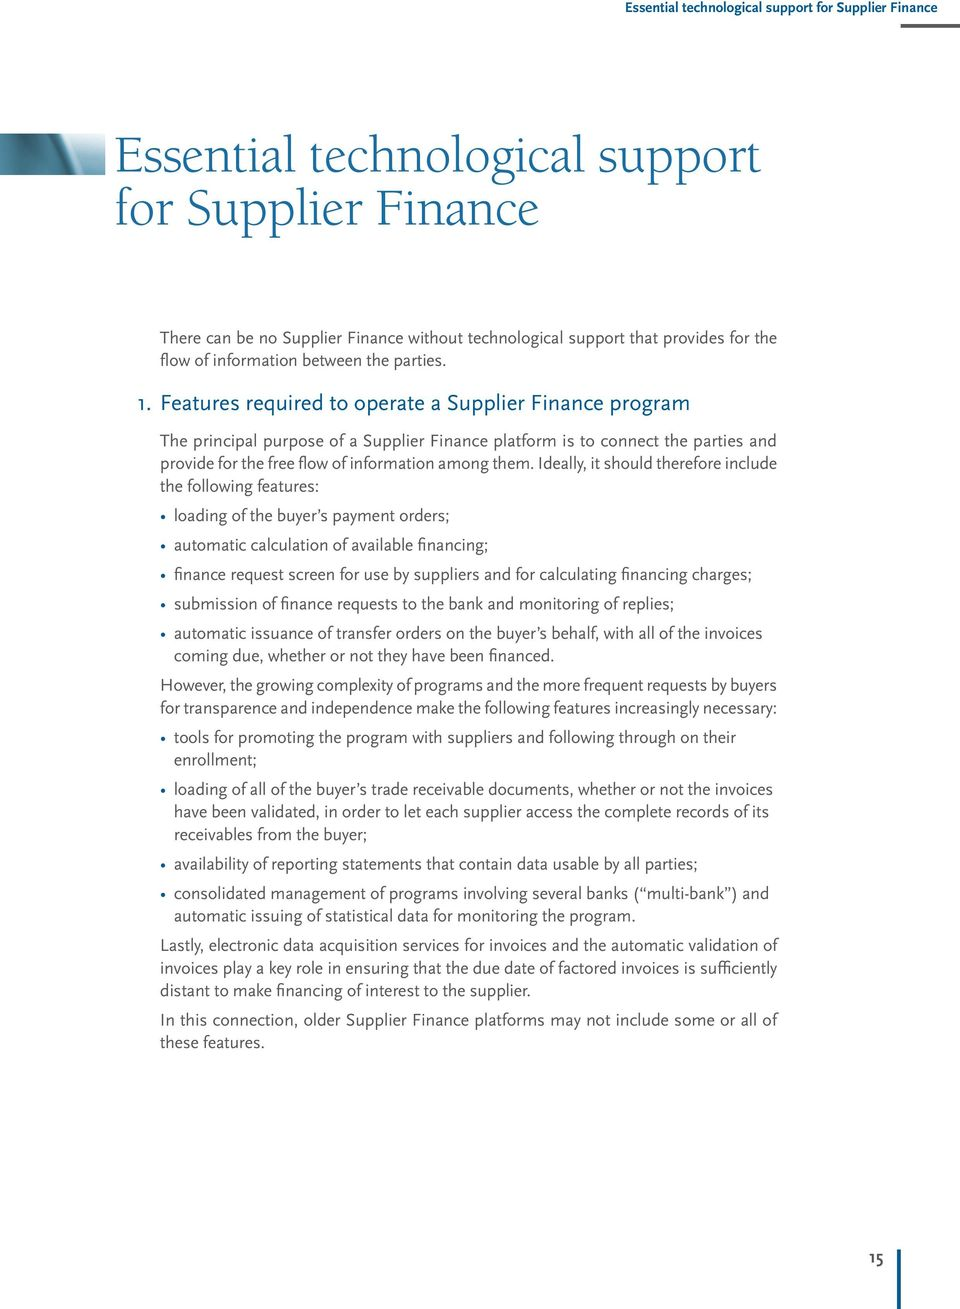 Features required to operate a Supplier Finance program The principal purpose of a Supplier Finance platform is to connect the parties and provide for the free flow of information among them.